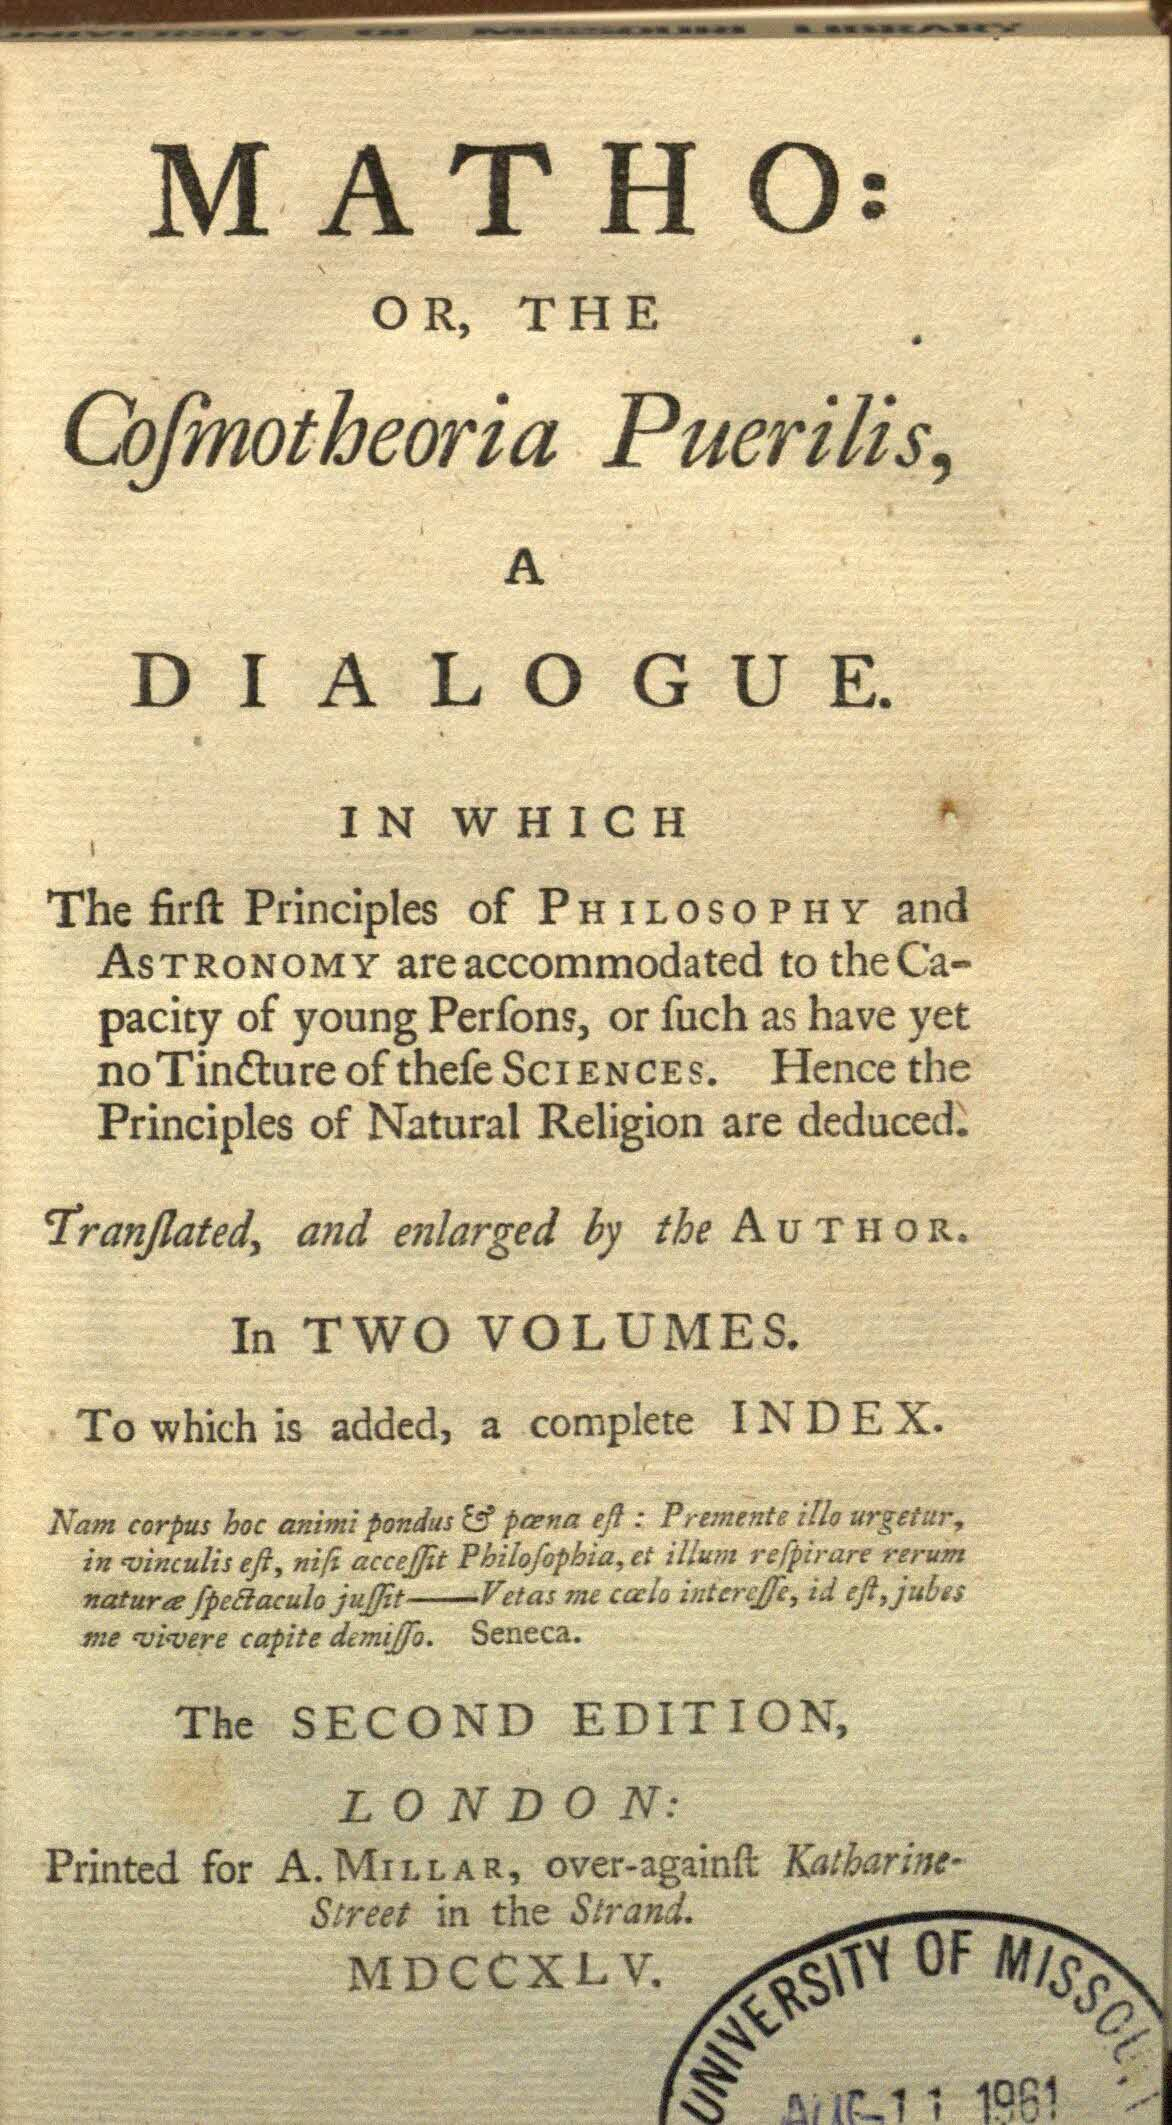 Matho : or, The cosmotheoria puerilis, a dialogue. In which the first principles of philosophy and astronomy are accomodated to the capacity of young persons, or such as have yet no tincture of these sciences / tr., and enl. by the author.